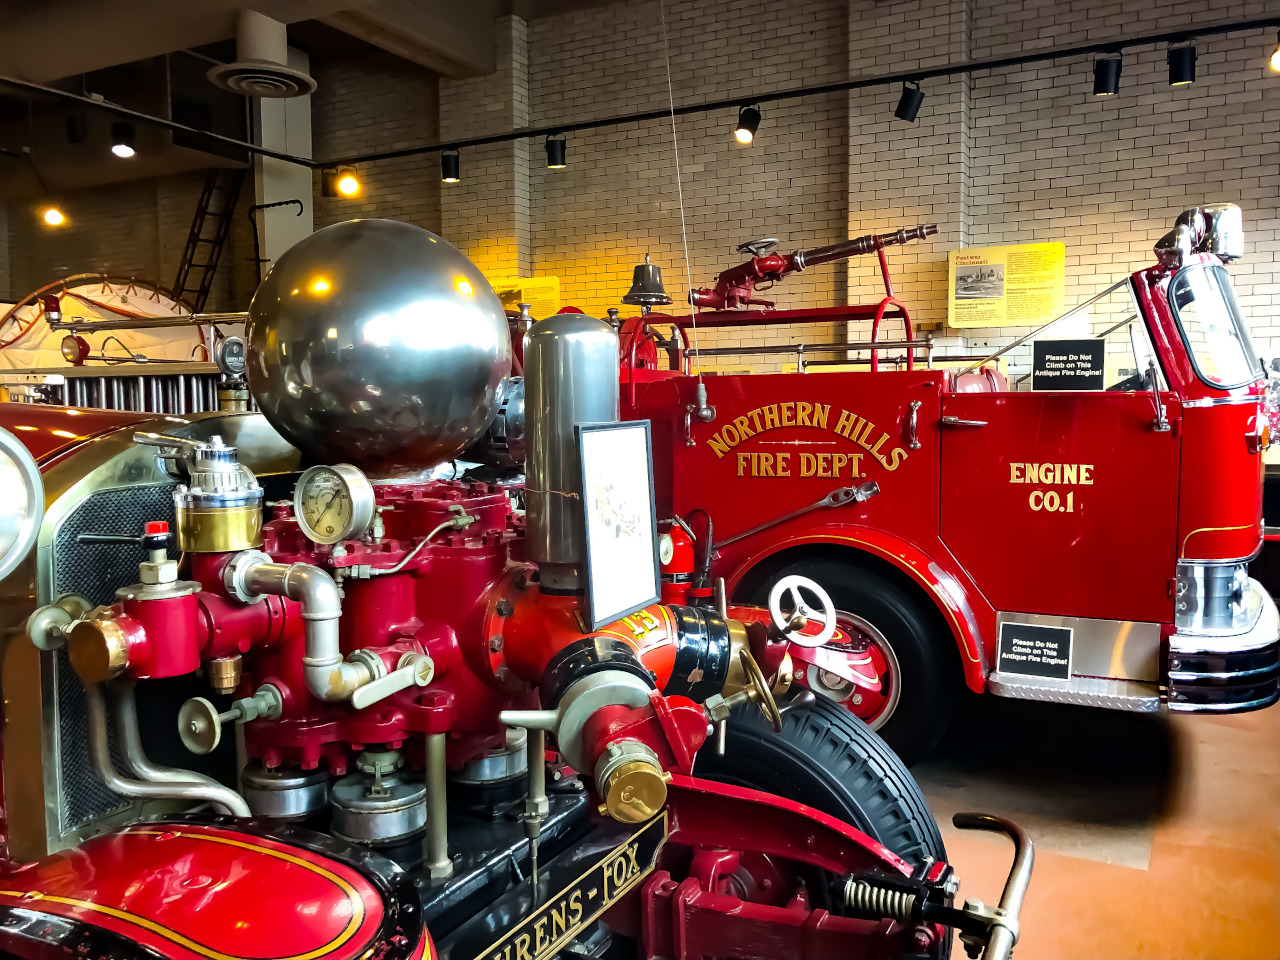 Cincinnati Fire Museum is one of the best offbeat attractions in Cincinnati. Discover more from this article and explore Cincinnati like a local